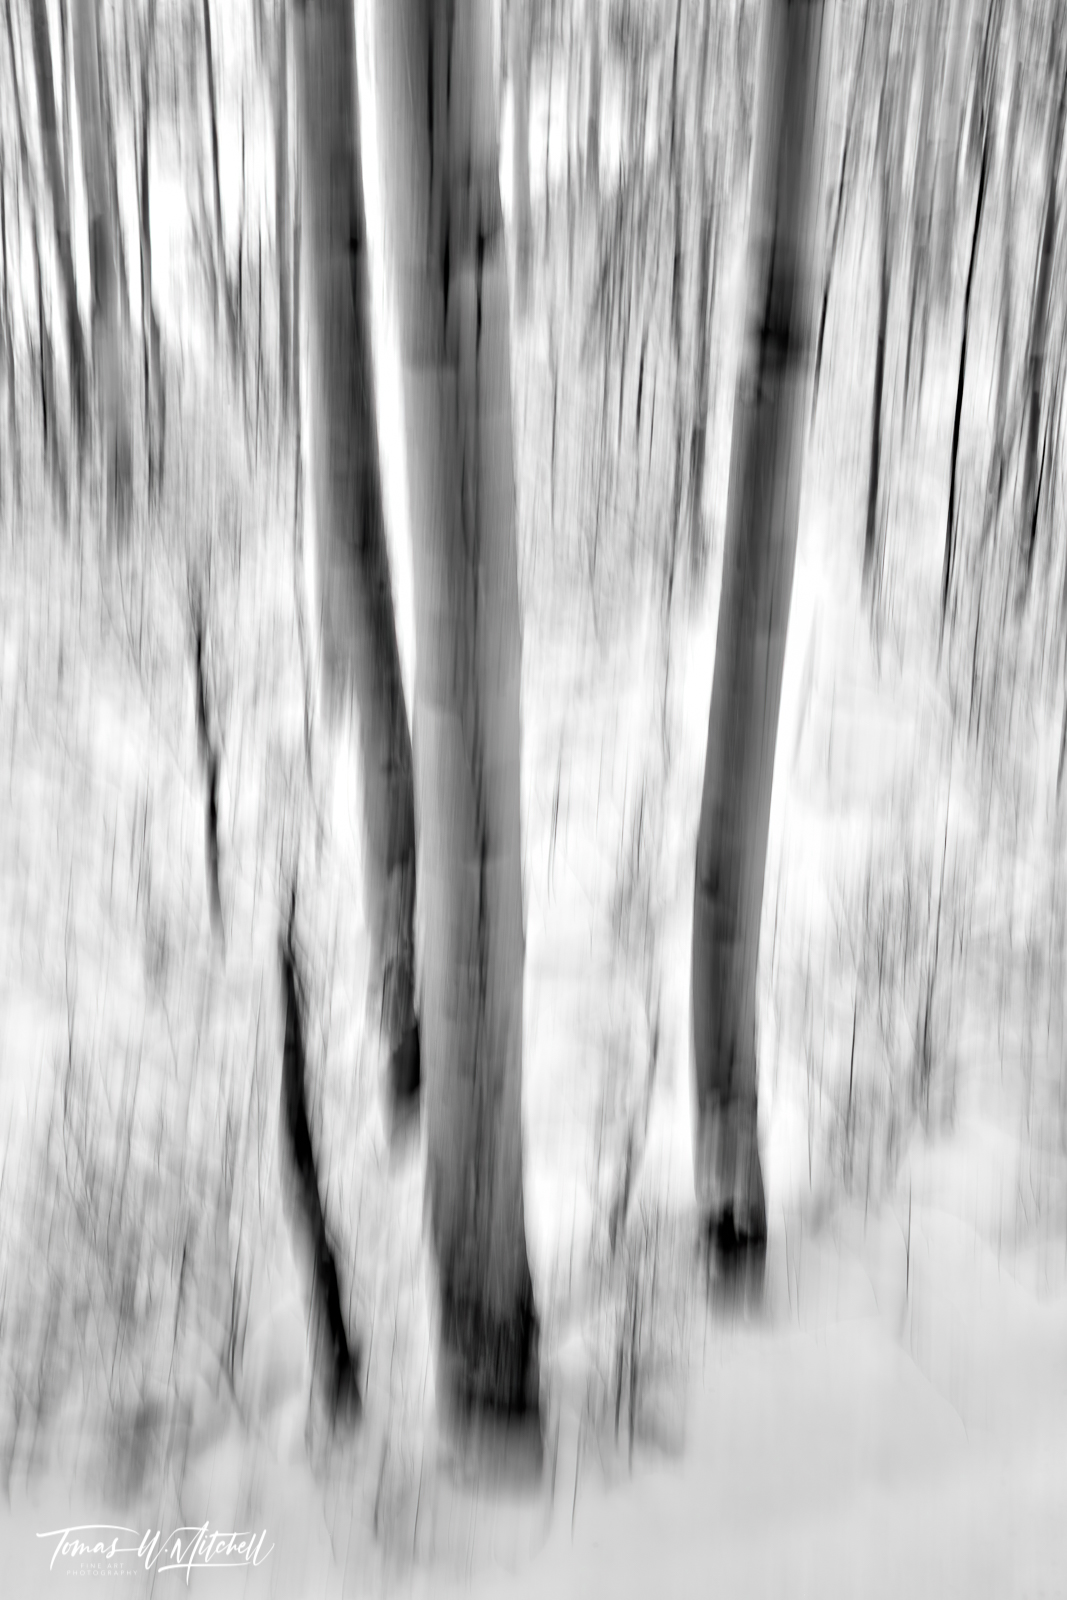 UINTA-WASATCH-CACHE NATIONAL FOREST, UTAH, limited edition, fine art, prints, snow, trees, snowstorm, aspen, snowflakes, photograph, abstract, black and white, photo